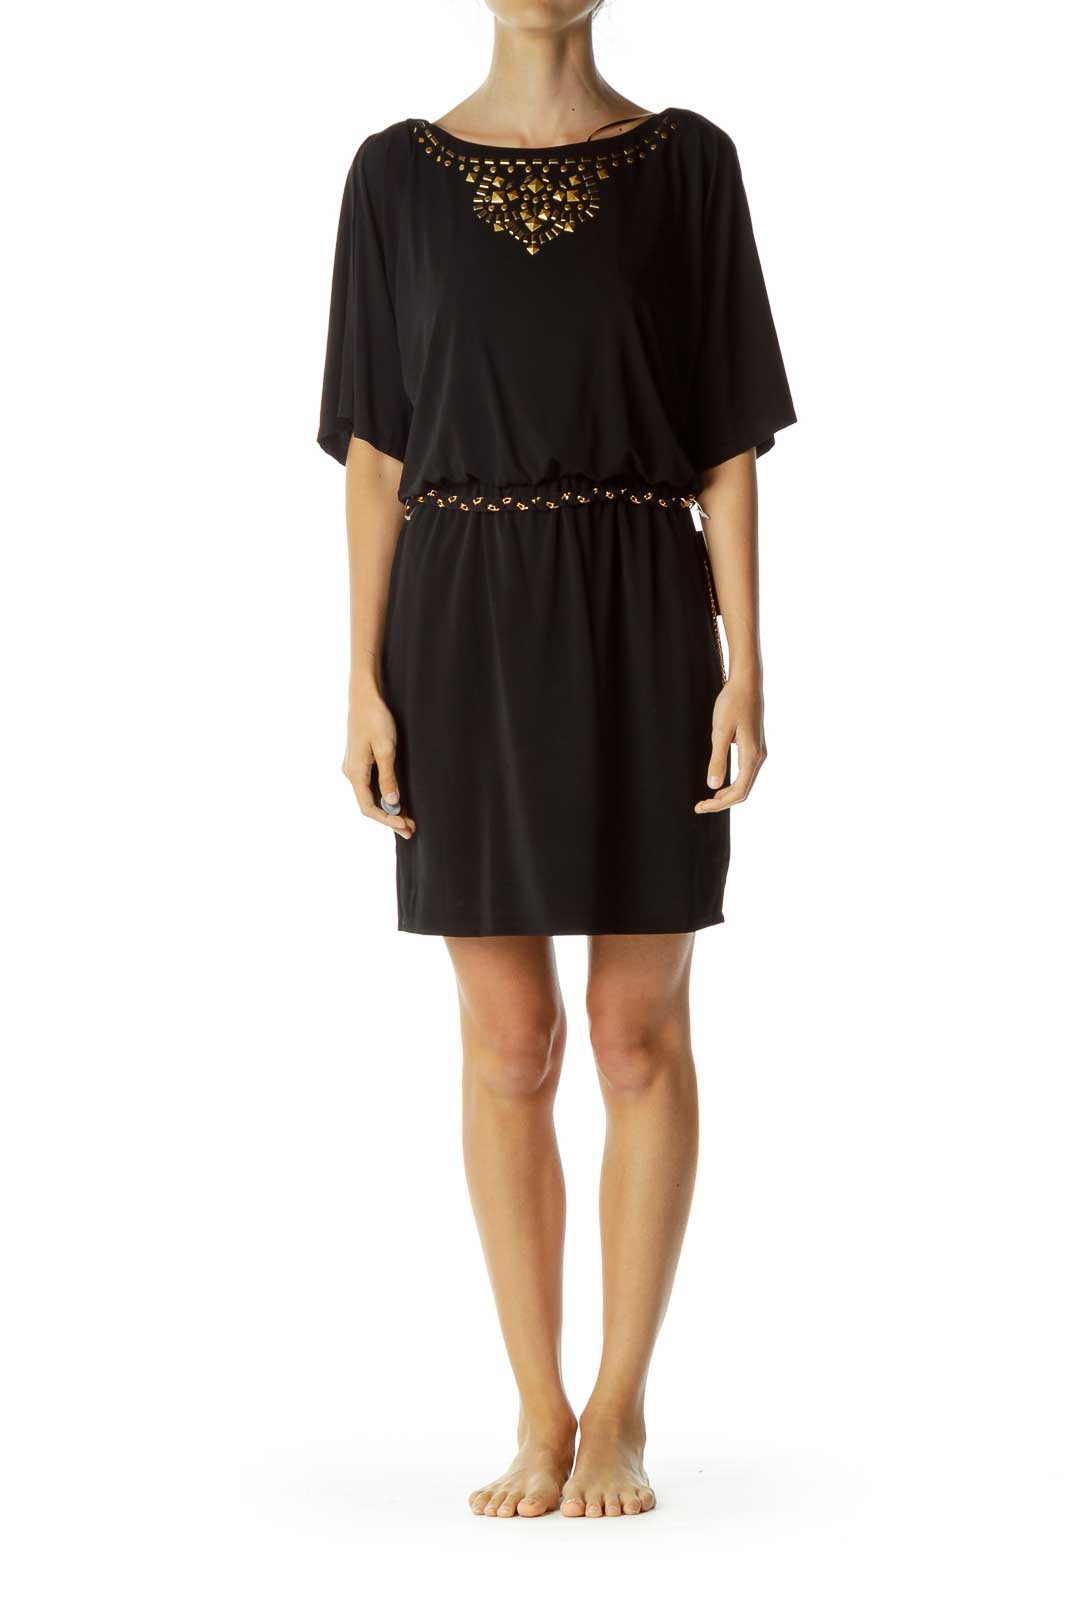 Black Dress with Gold Chain Details